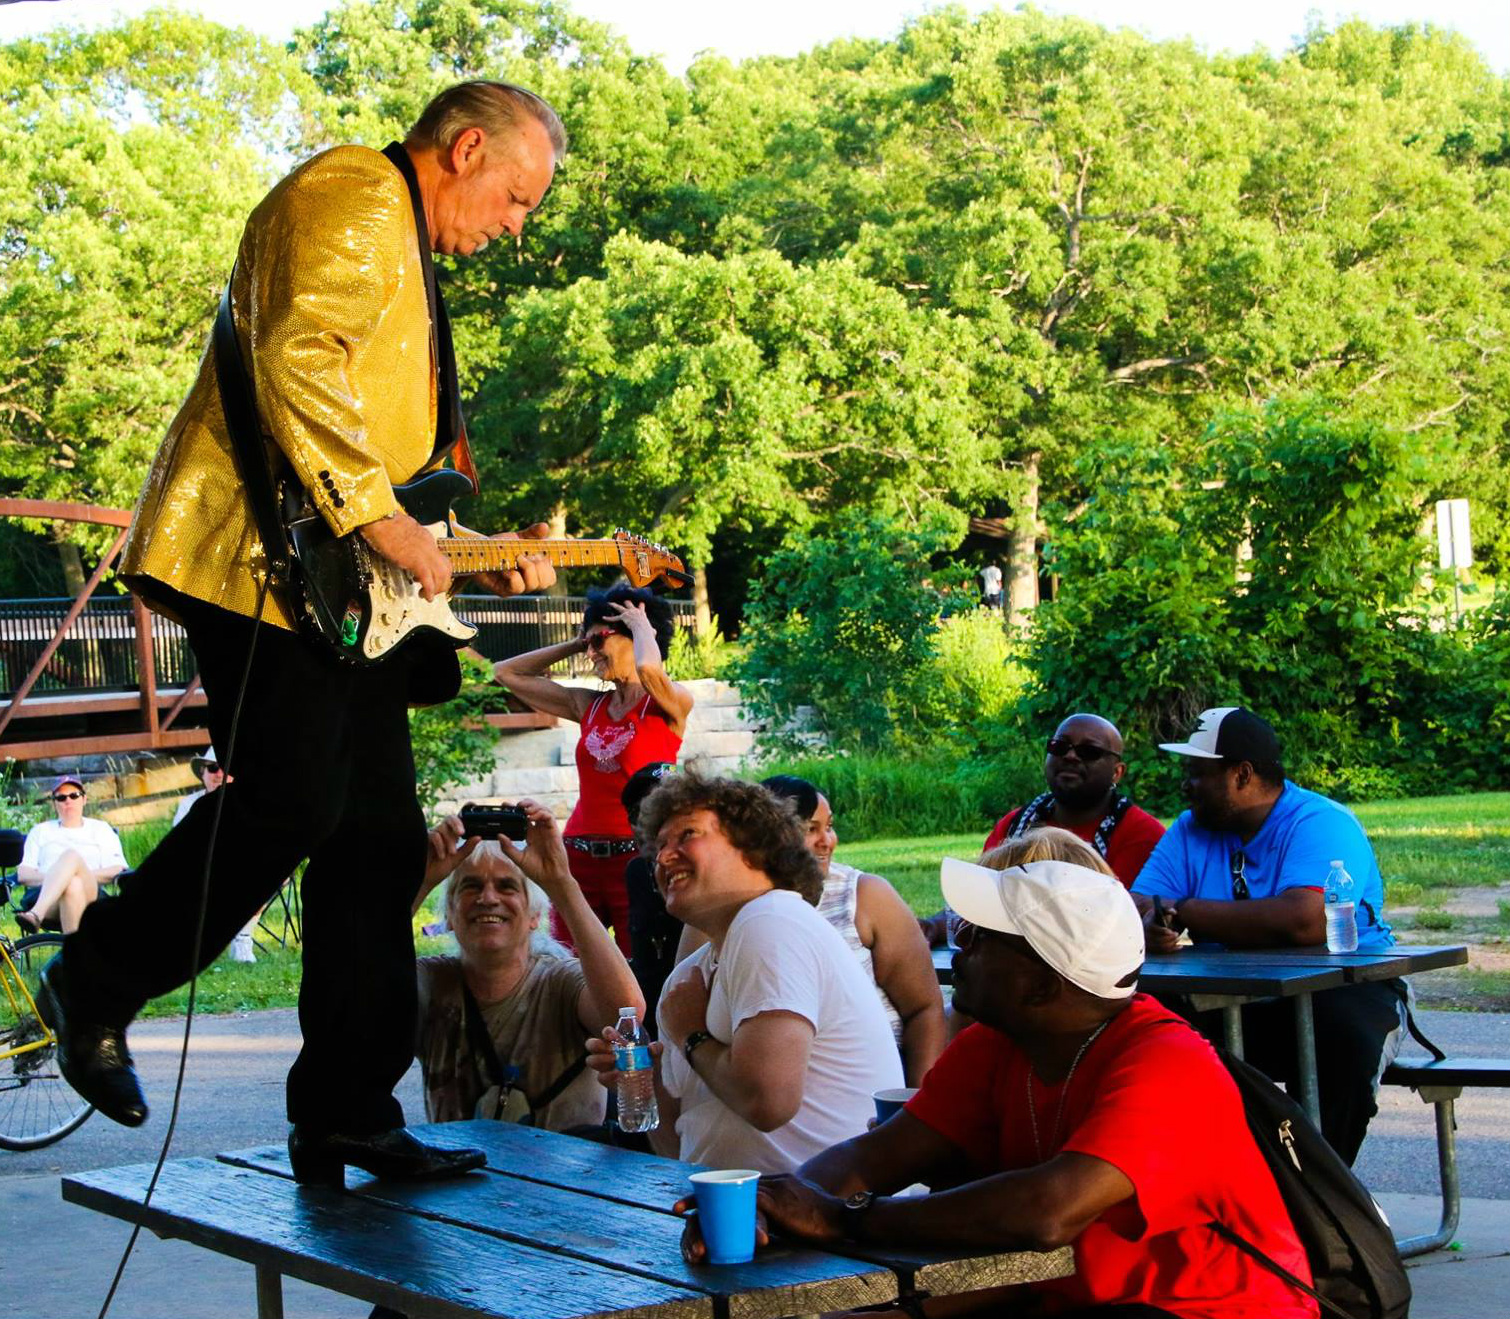 Paul Filopowicz playing guitar in a shiny yellow jacket, dancing on top of a wooden picnic table while he plays. Audience members are smiling up from their seats on the benches, and snapping photos.